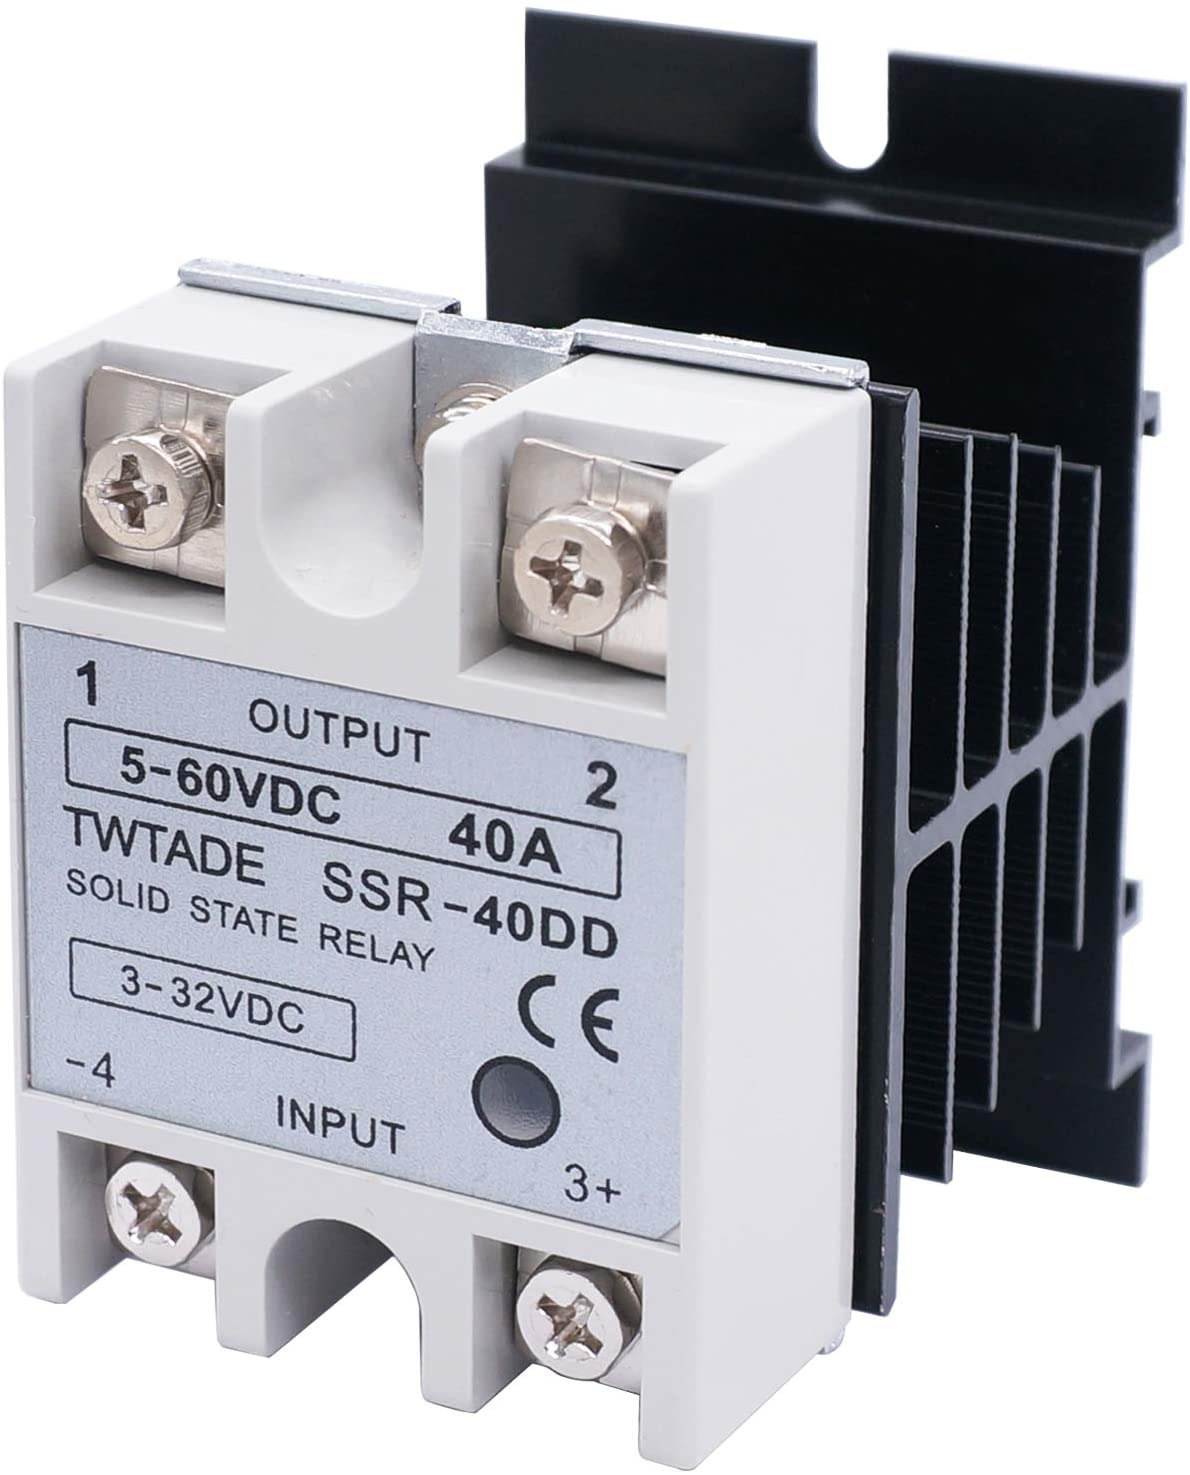 TWTADE SSR-40 DD 40A DC 3-32V to DC 5-60V SSR Solid State Relay